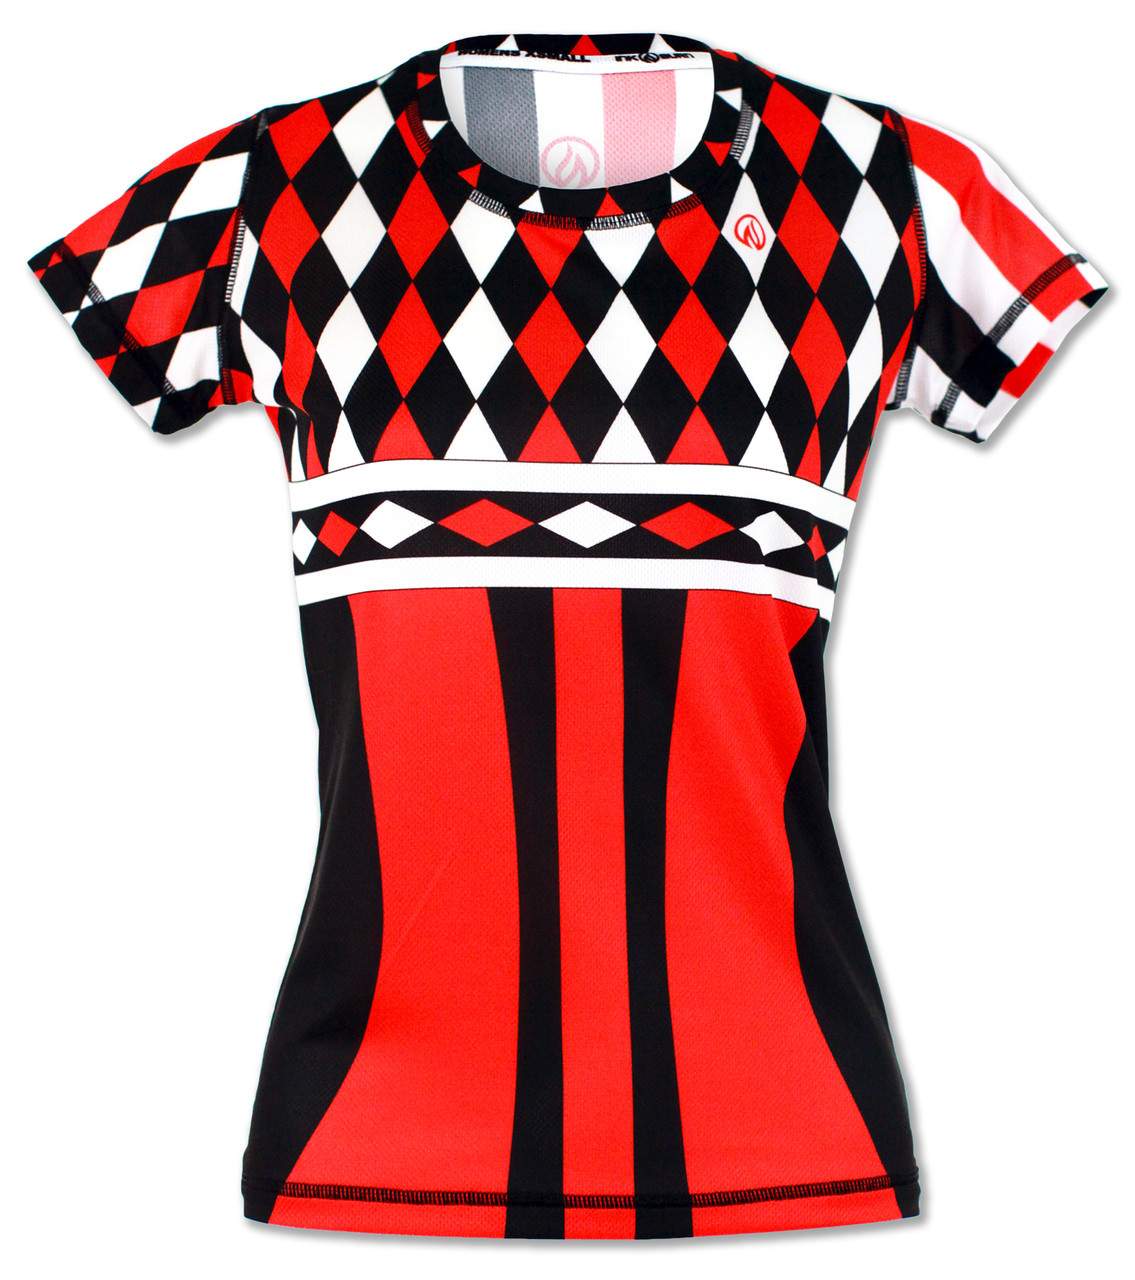 10 Small House Designs That Break Preconceptions About Small Size: Women's Harlequin Tech Shirt For Running, Gym & Crossfit